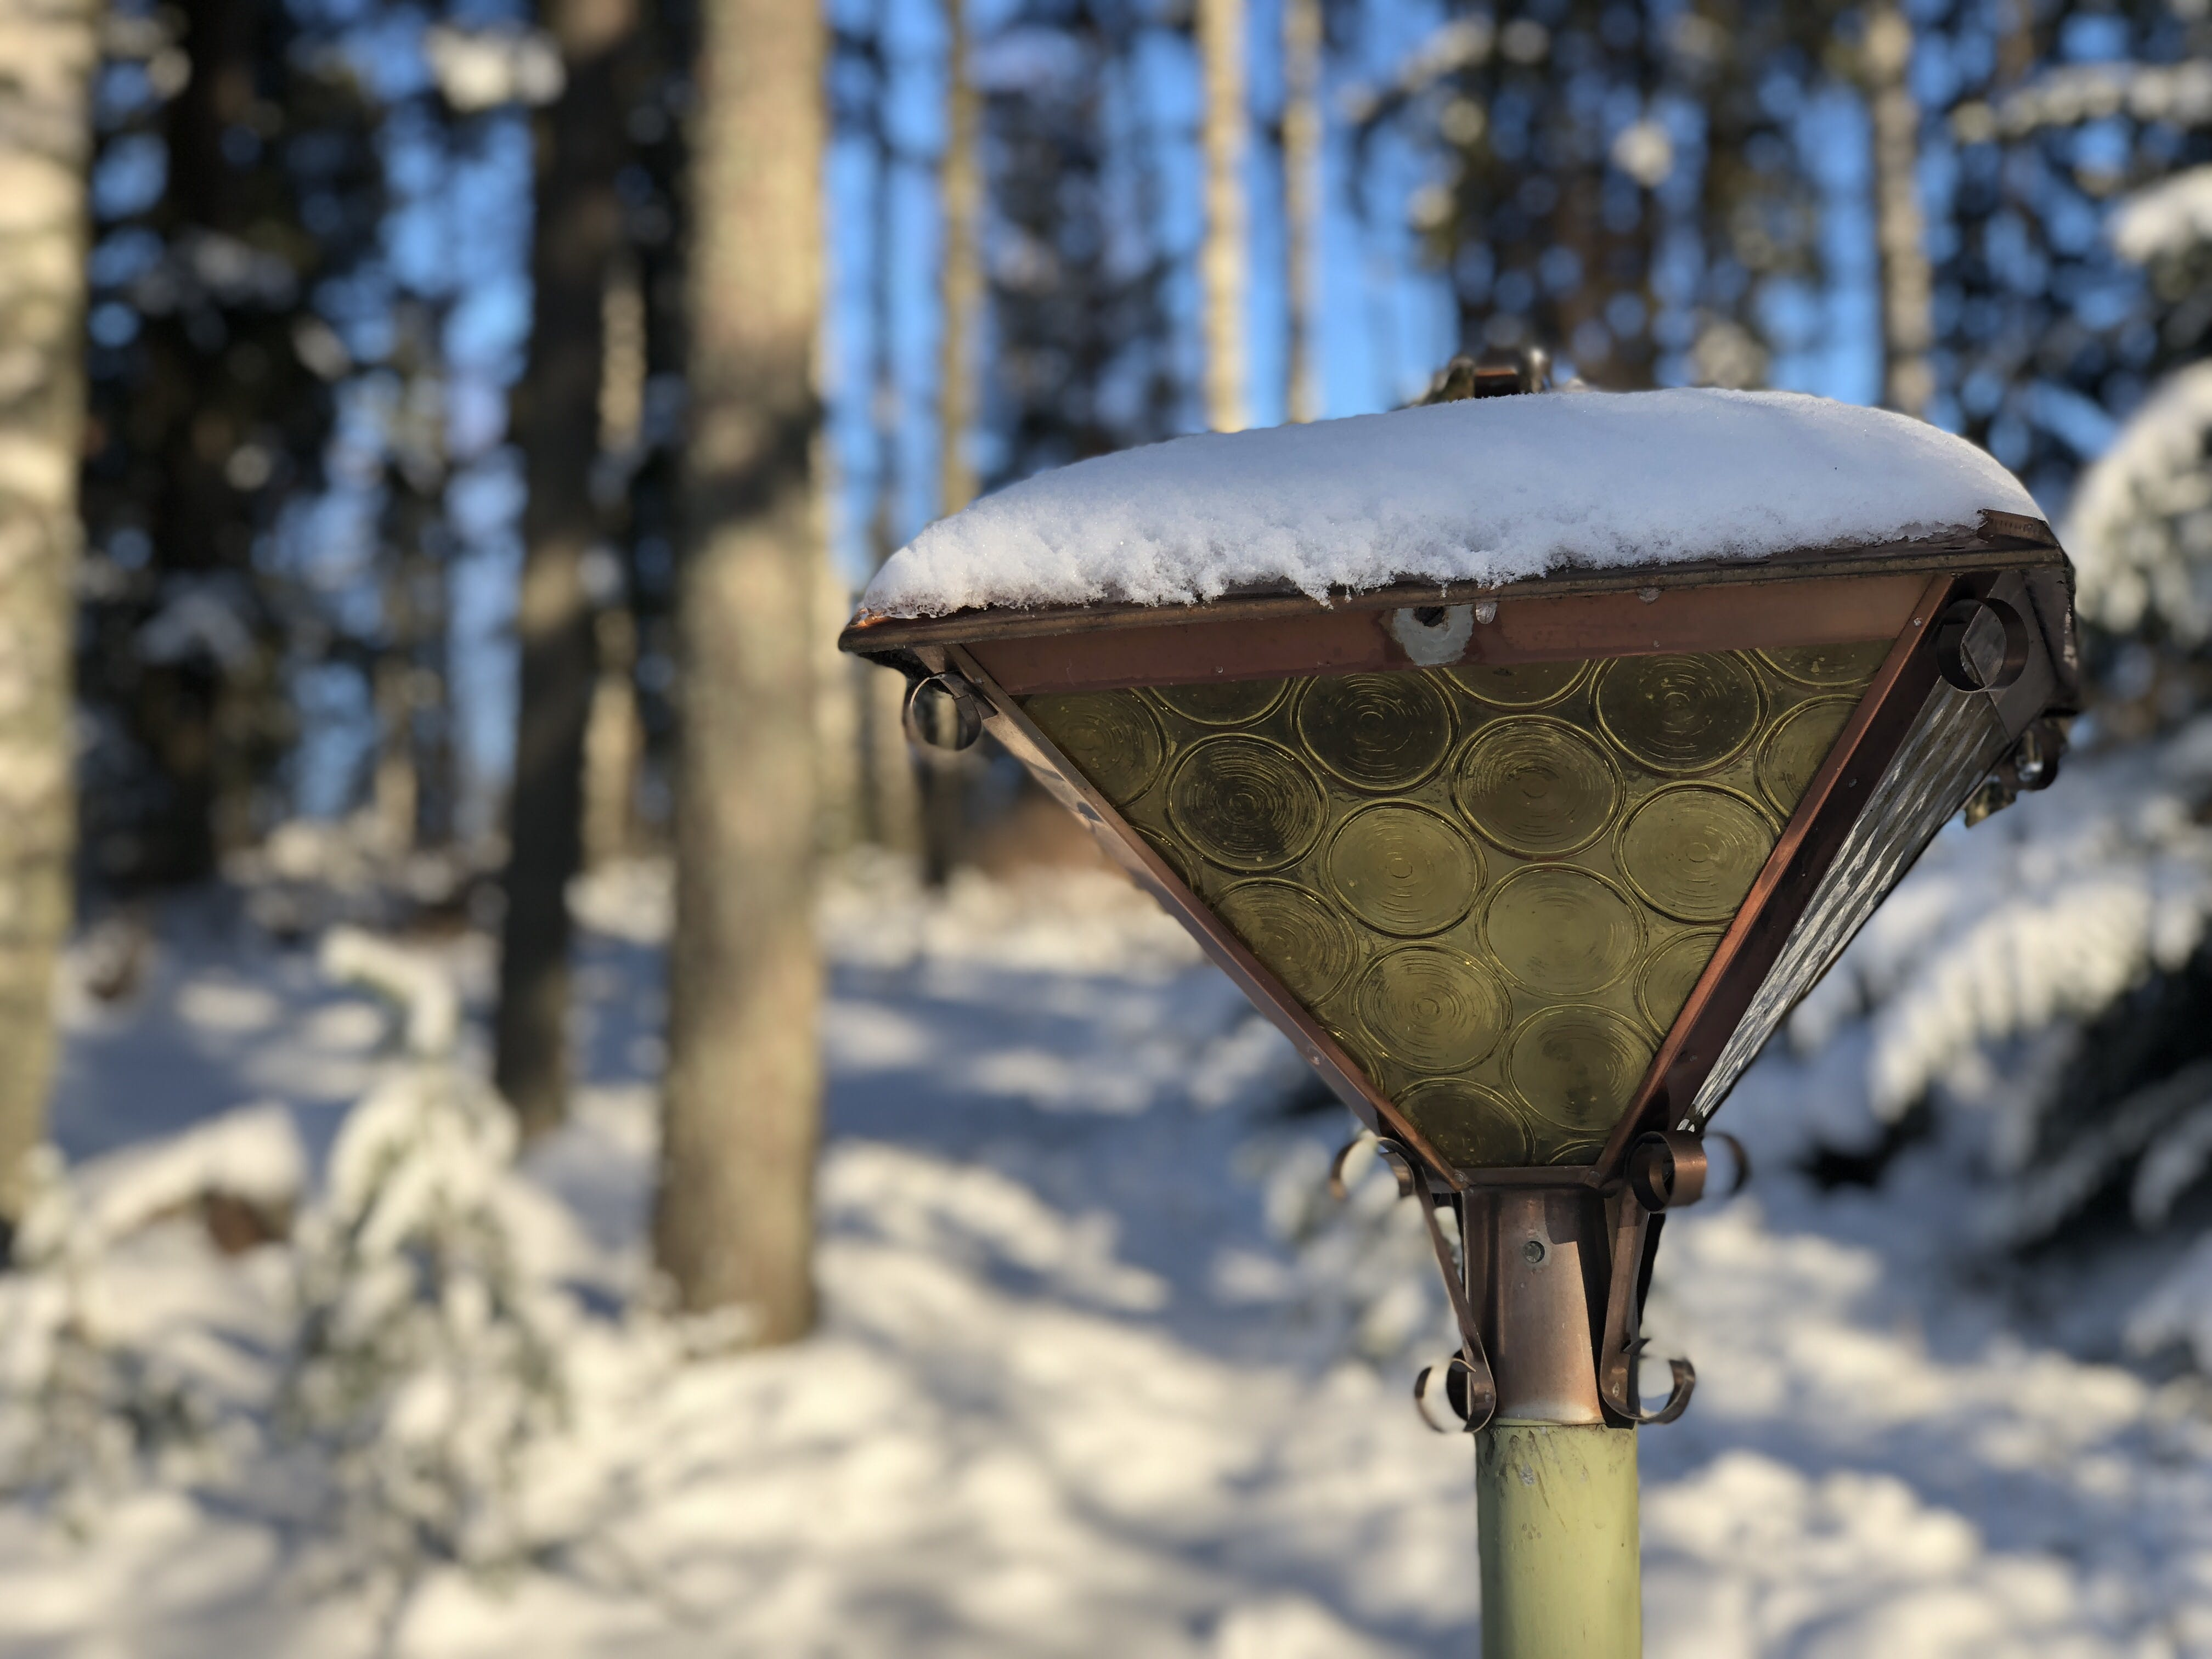 Free stock photo of Finland, forrest, lamp, snow